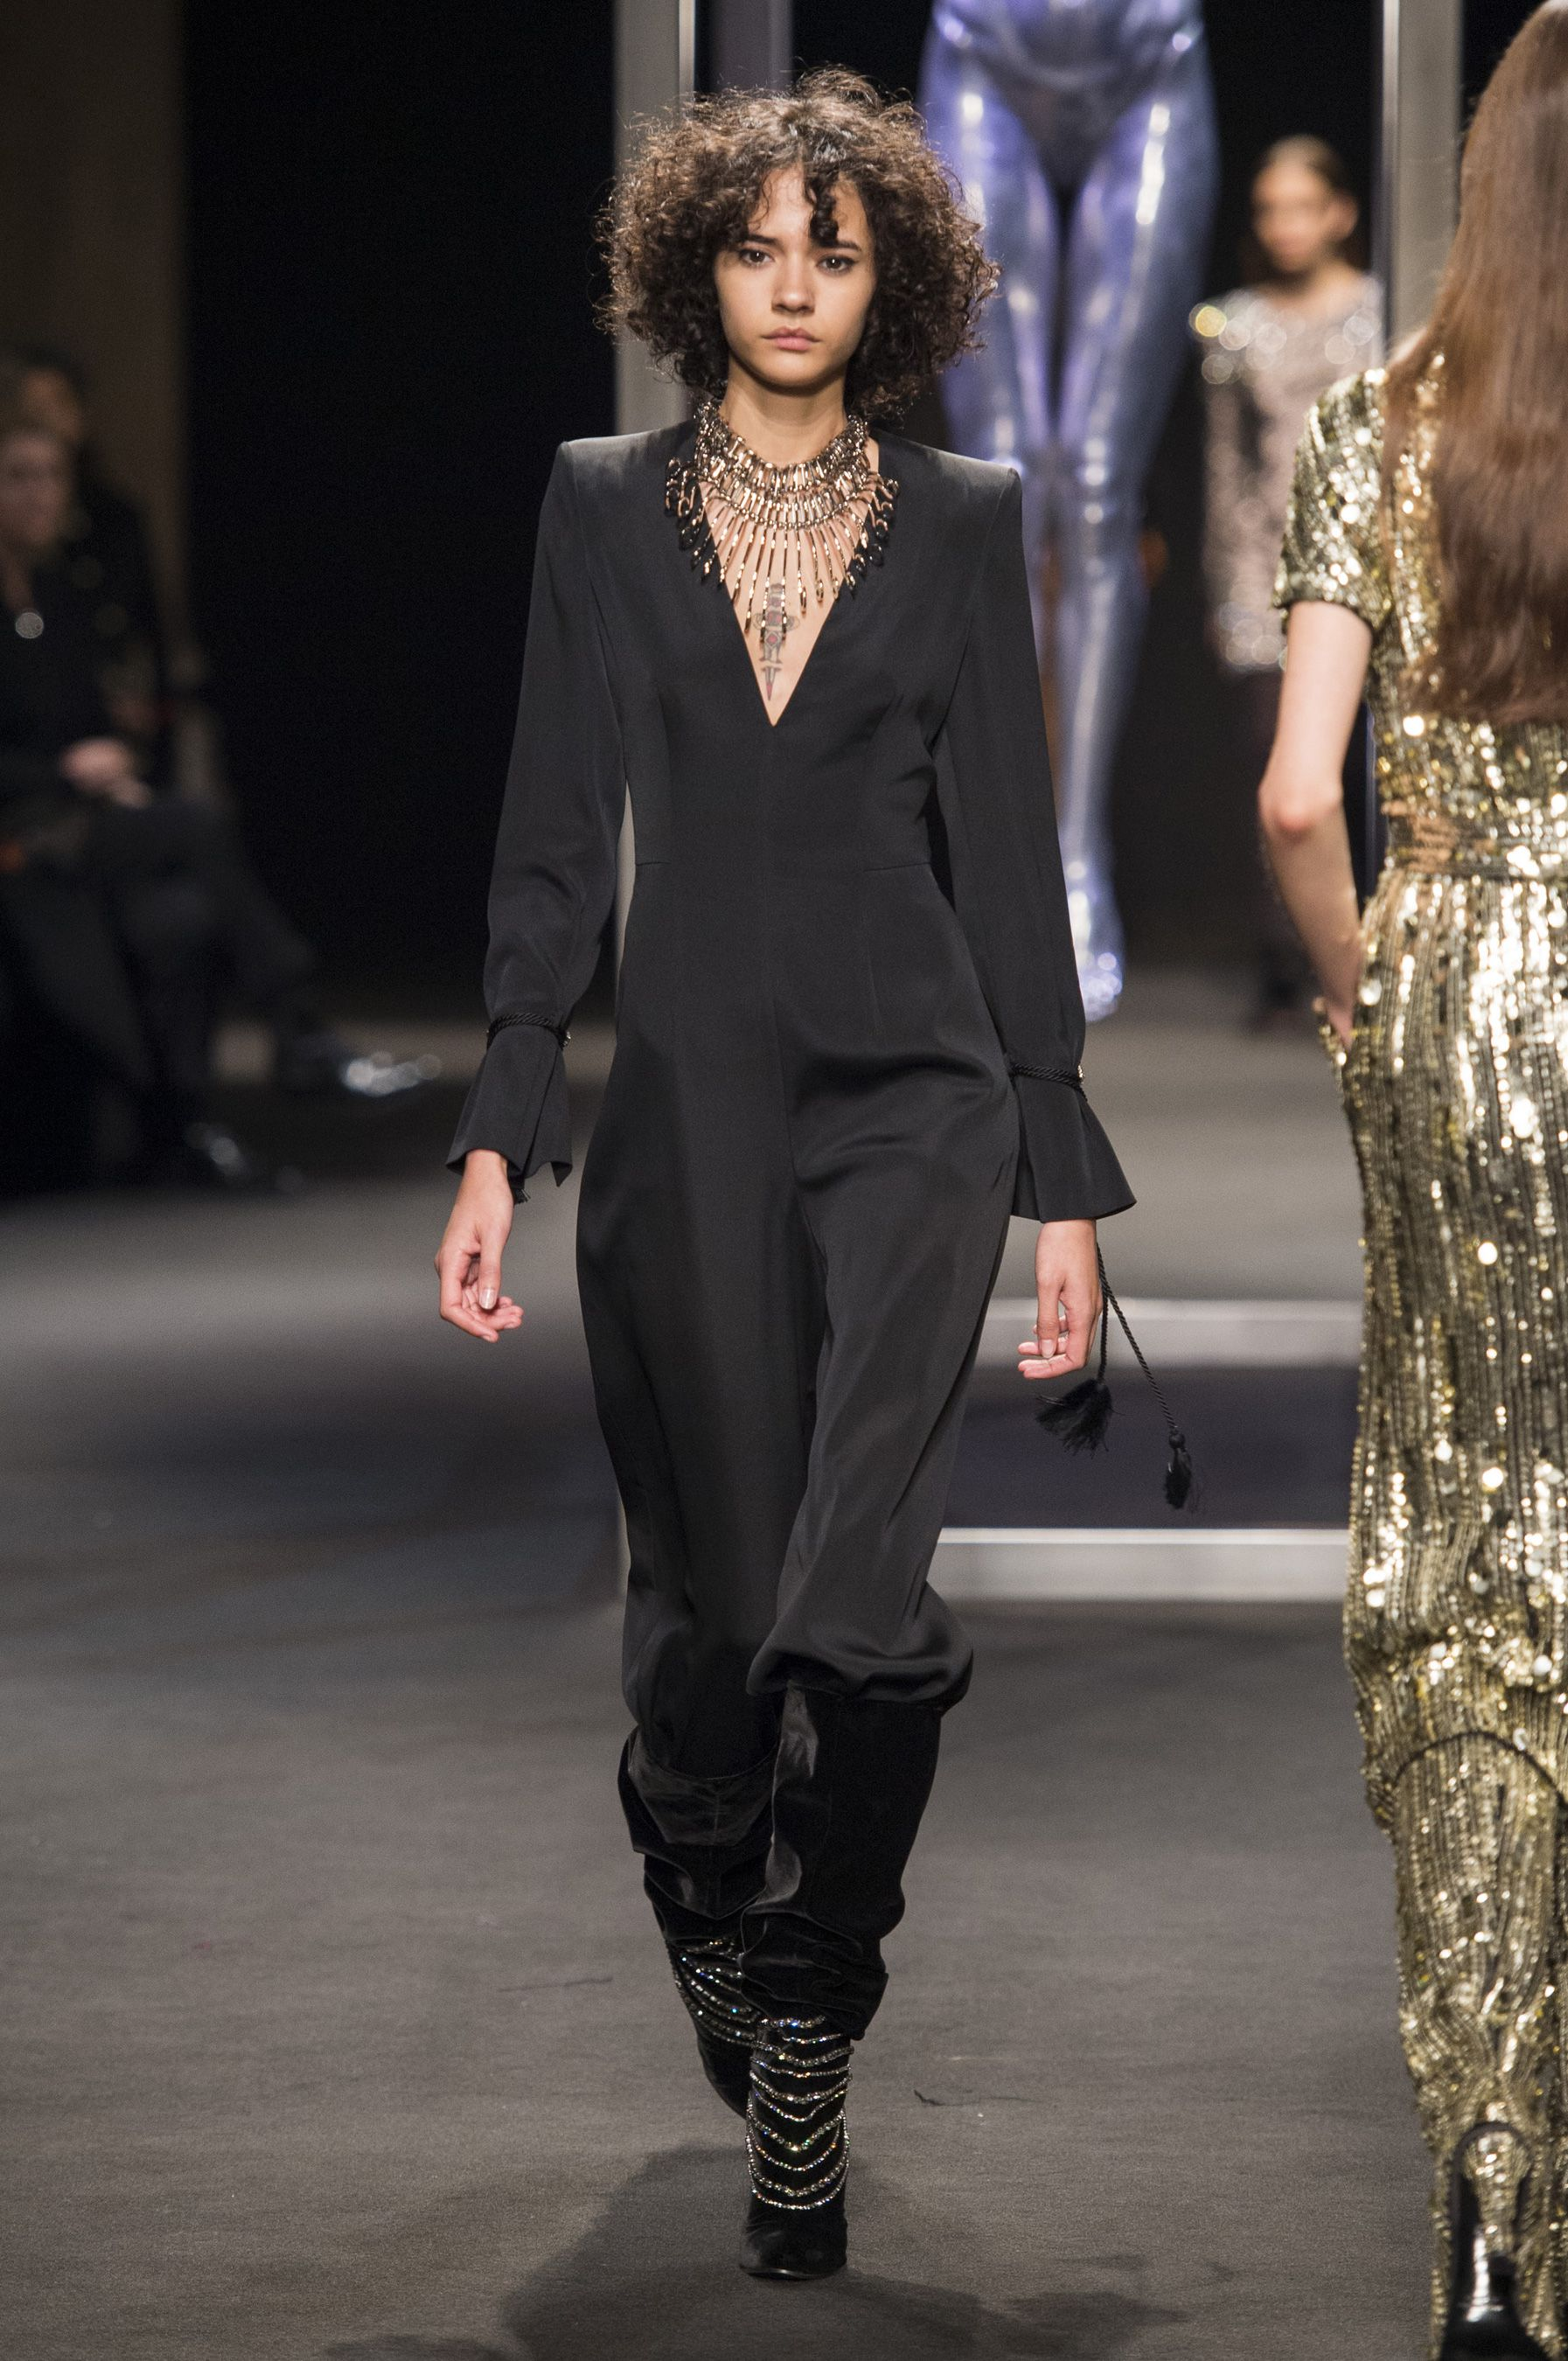 Alberta Ferretti Autumn Winter 2018 - How to Style a Jumpsuit - Source ImaxTree via Harper's Bazaar - how to style a romper - jumpsuits - accessorizing a jumpsuit - how to wear a jumpsuit - the perfect black jumpsuit